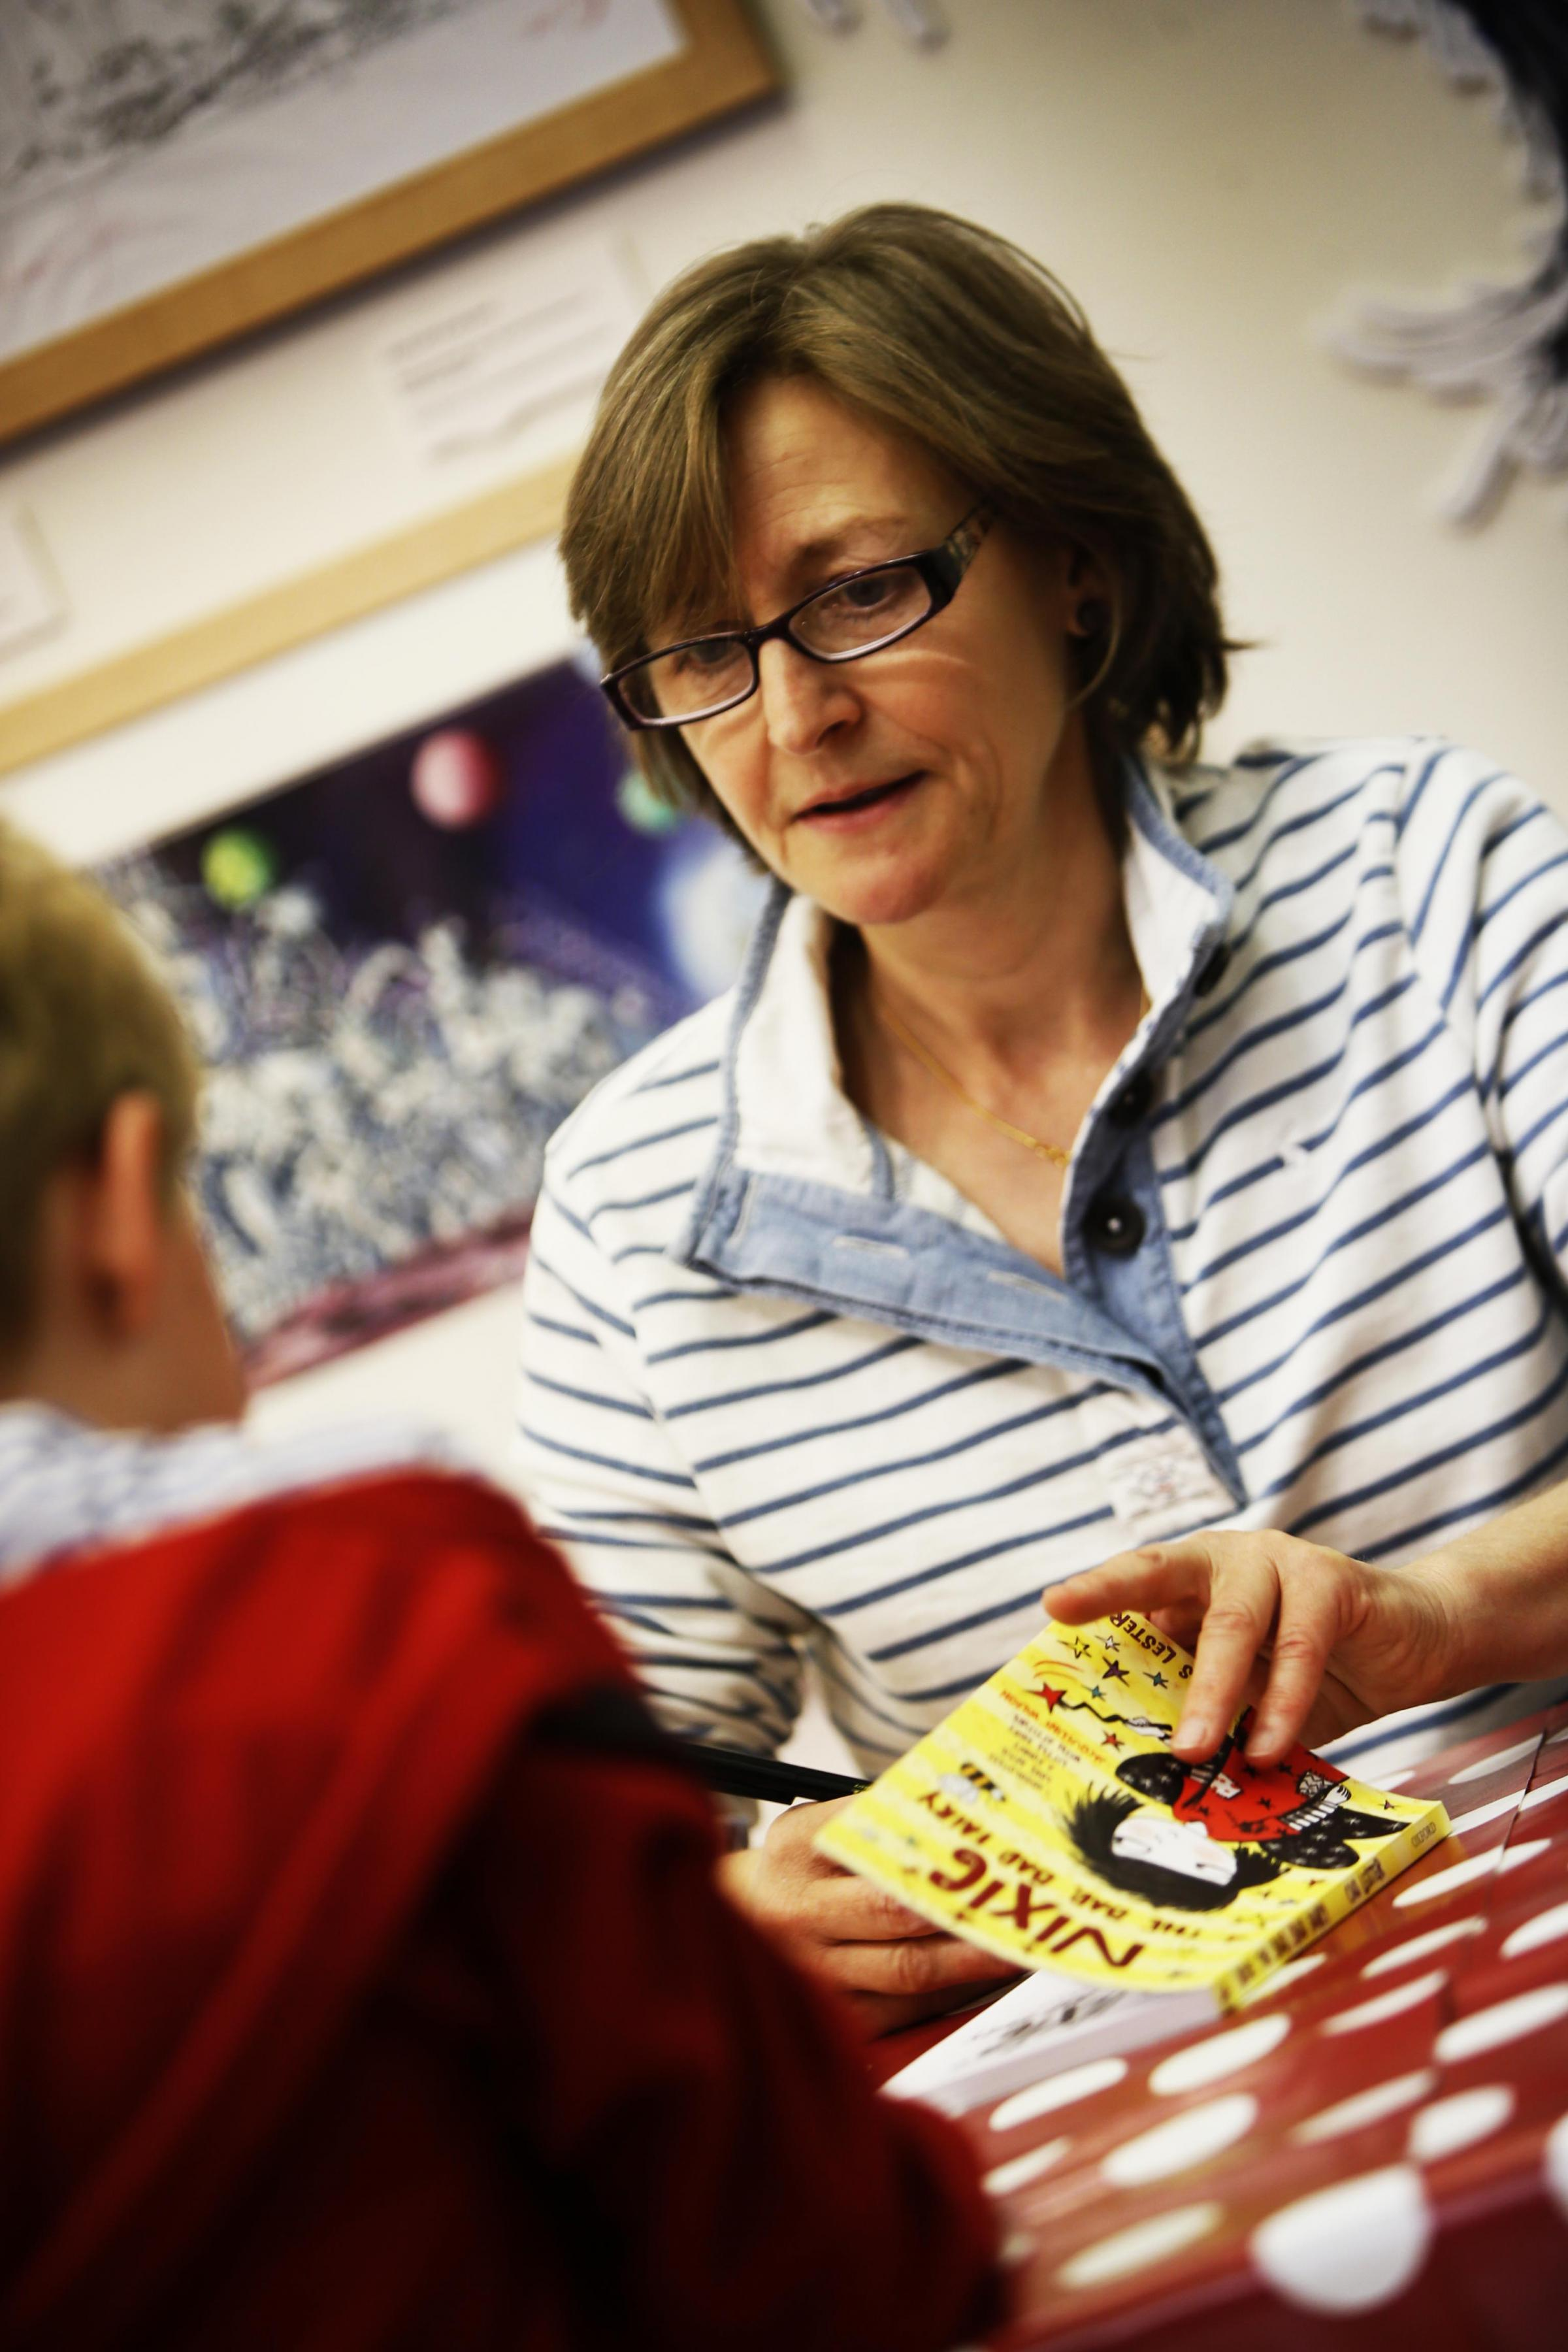 Children's author meets pupils